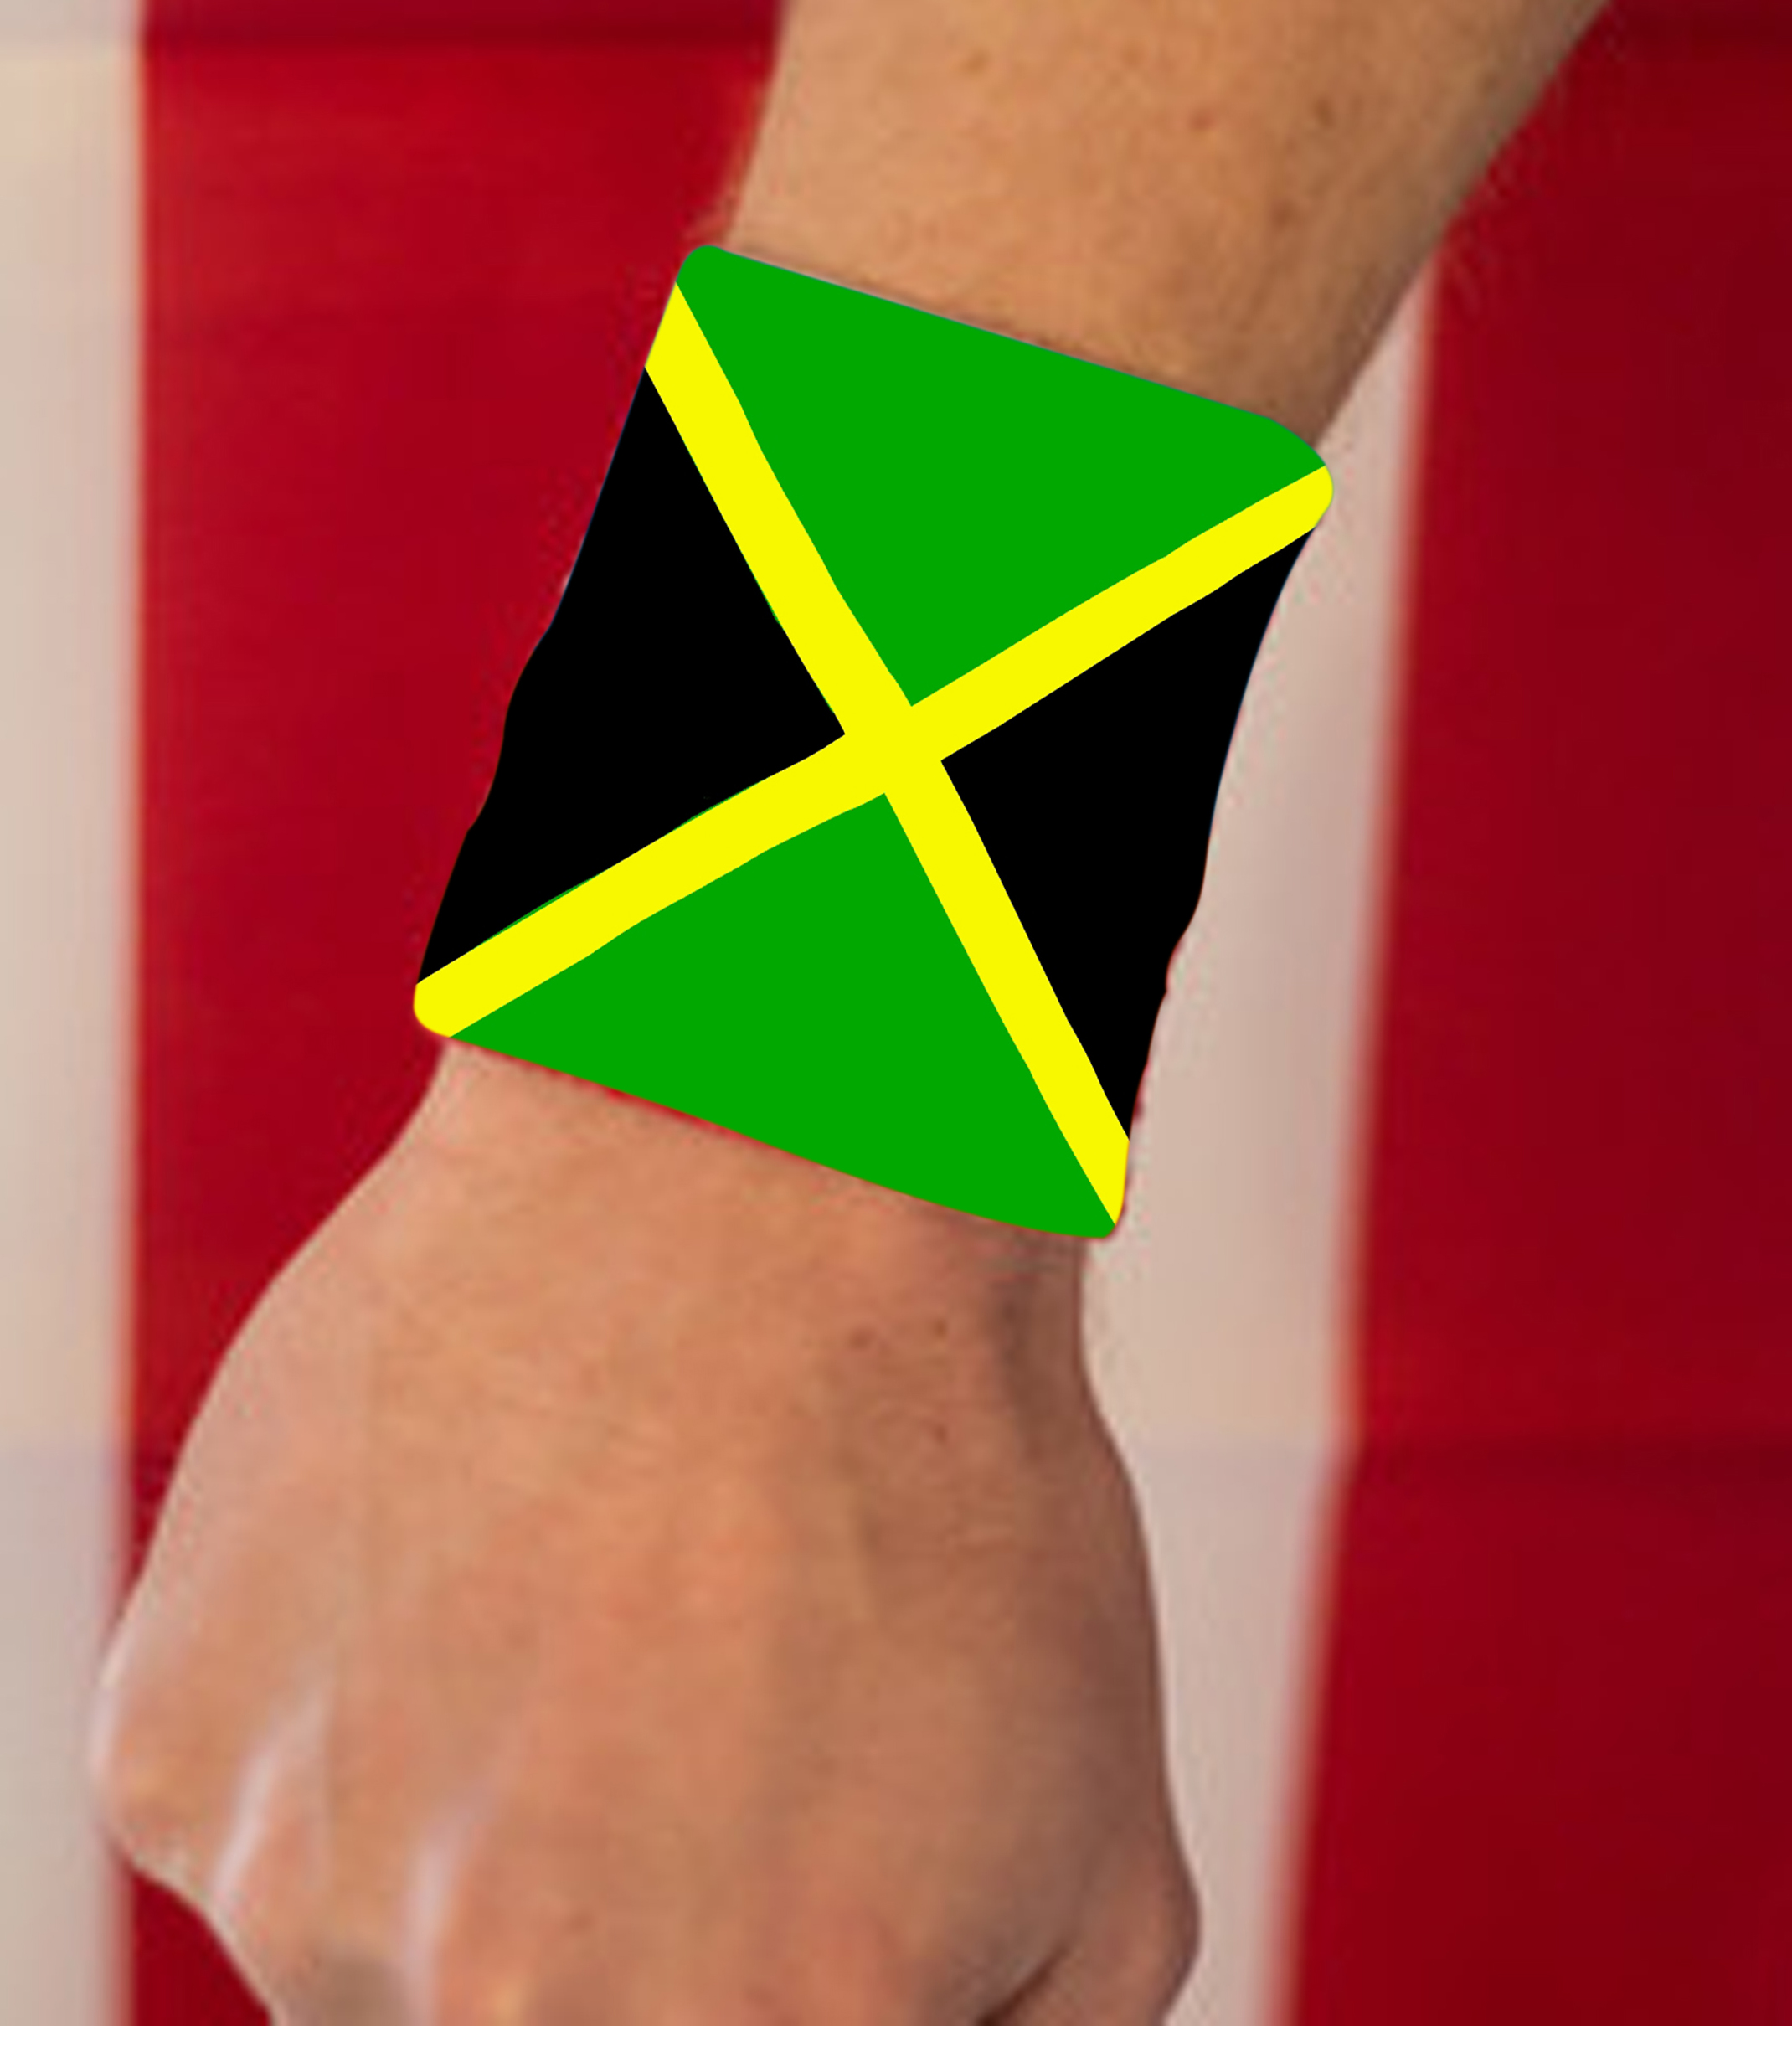 images/Jamaica image hand band.jpg